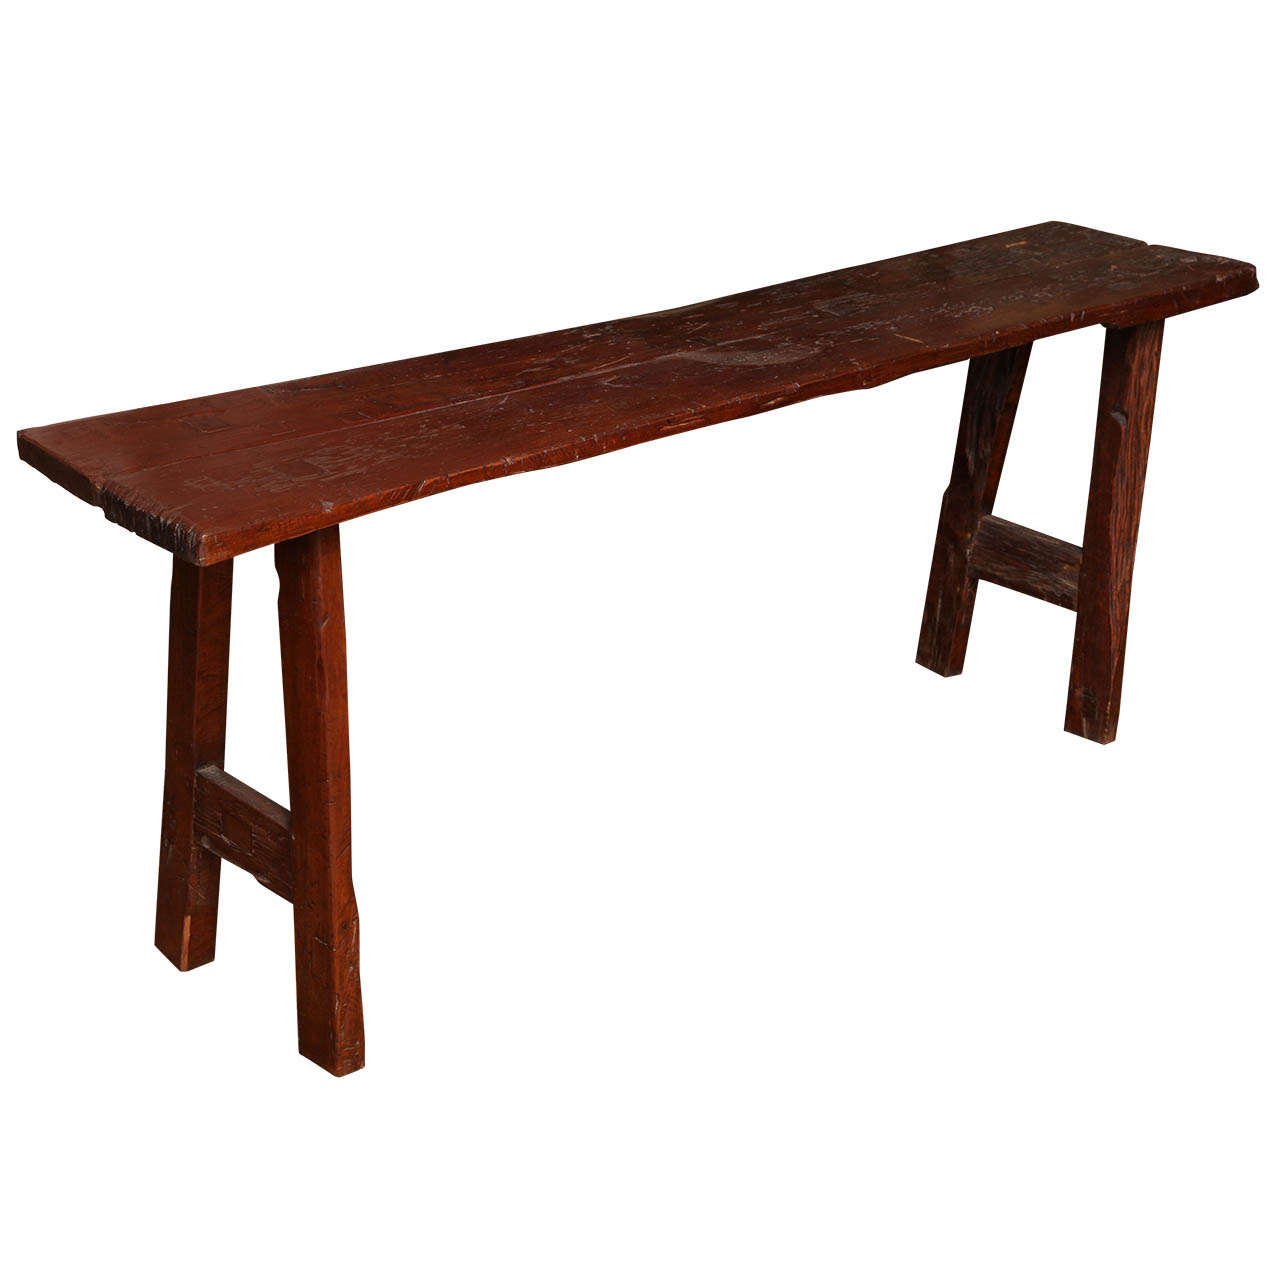 Rustic Long And Narrow Javanese Wooden Table From The 19th Century For